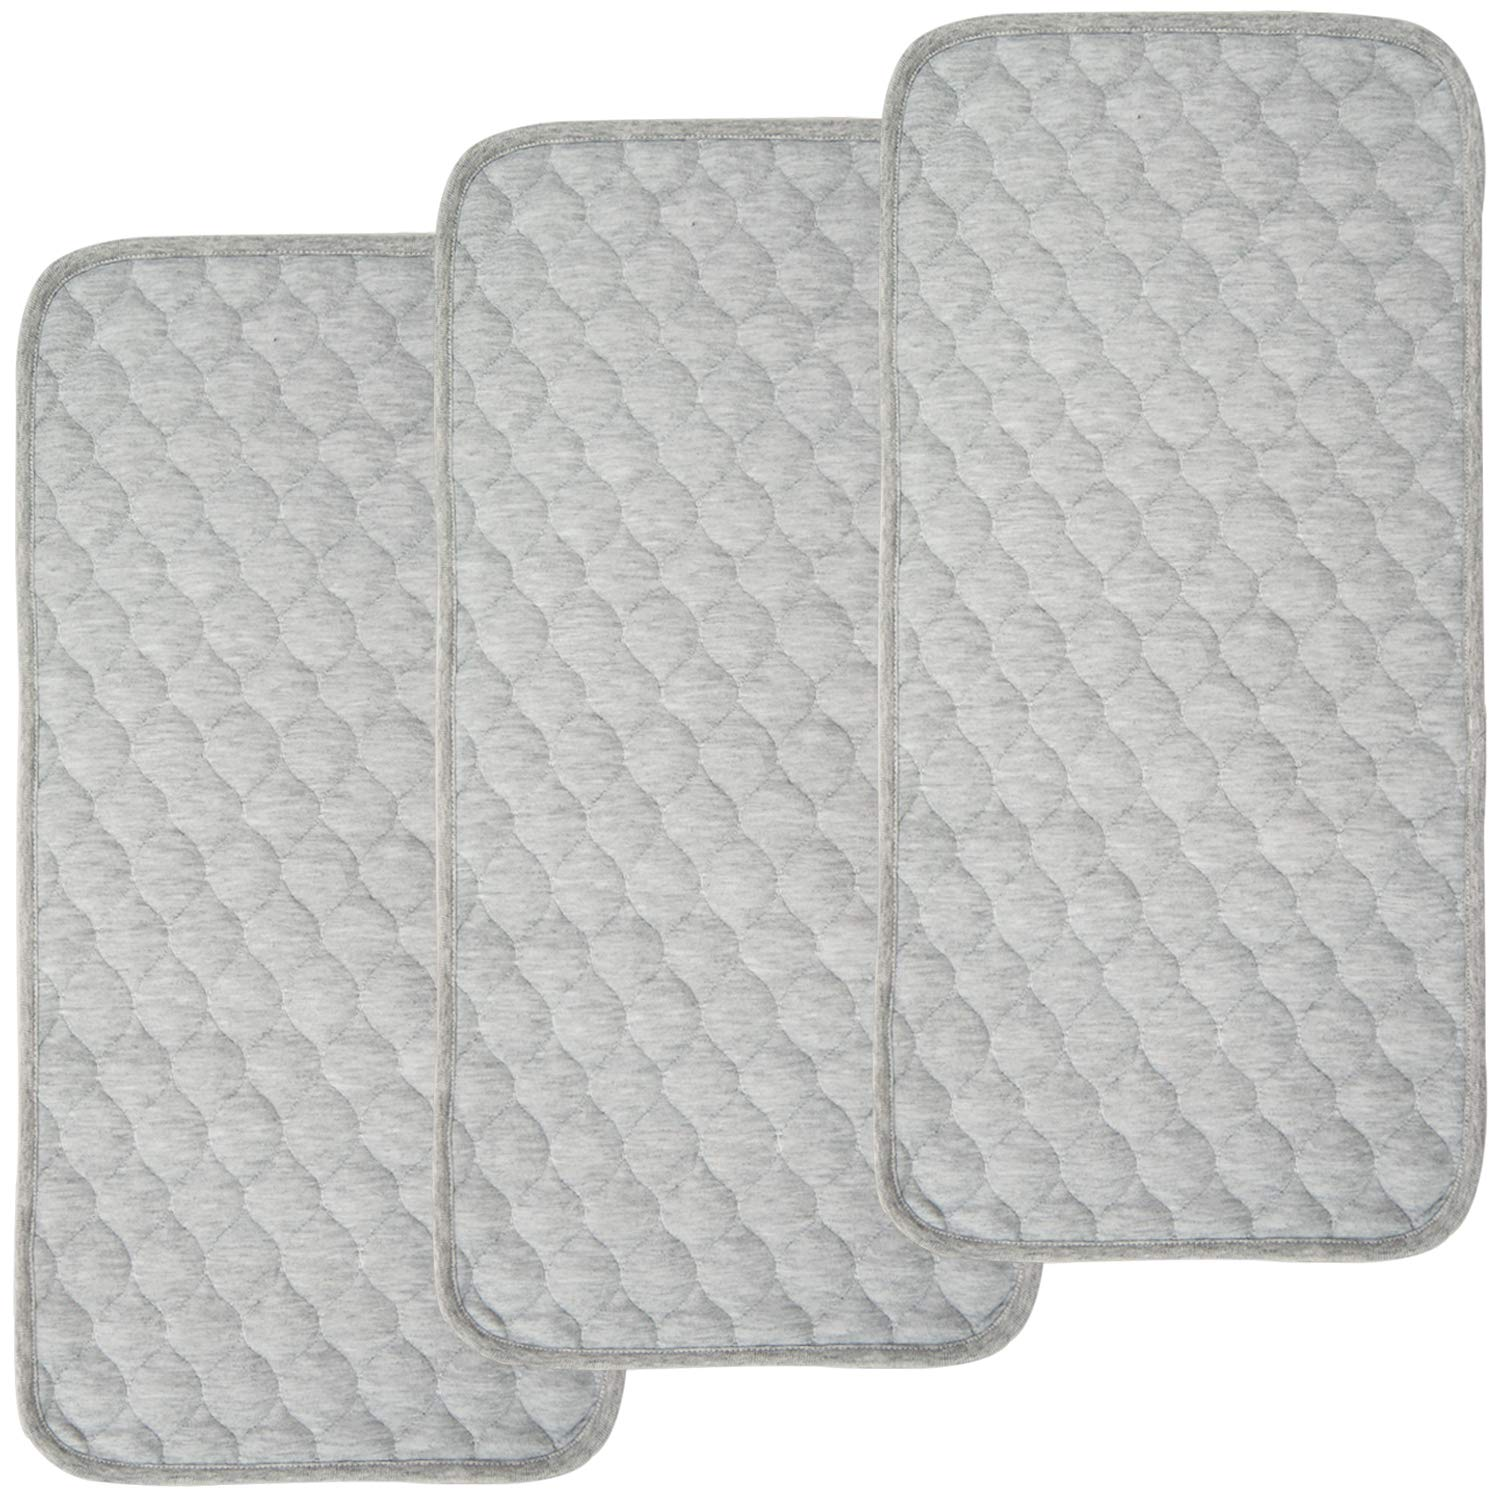 BlueSnail Bamboo Quilted Thicker Waterproof Changing Pad Liners, 3 Count